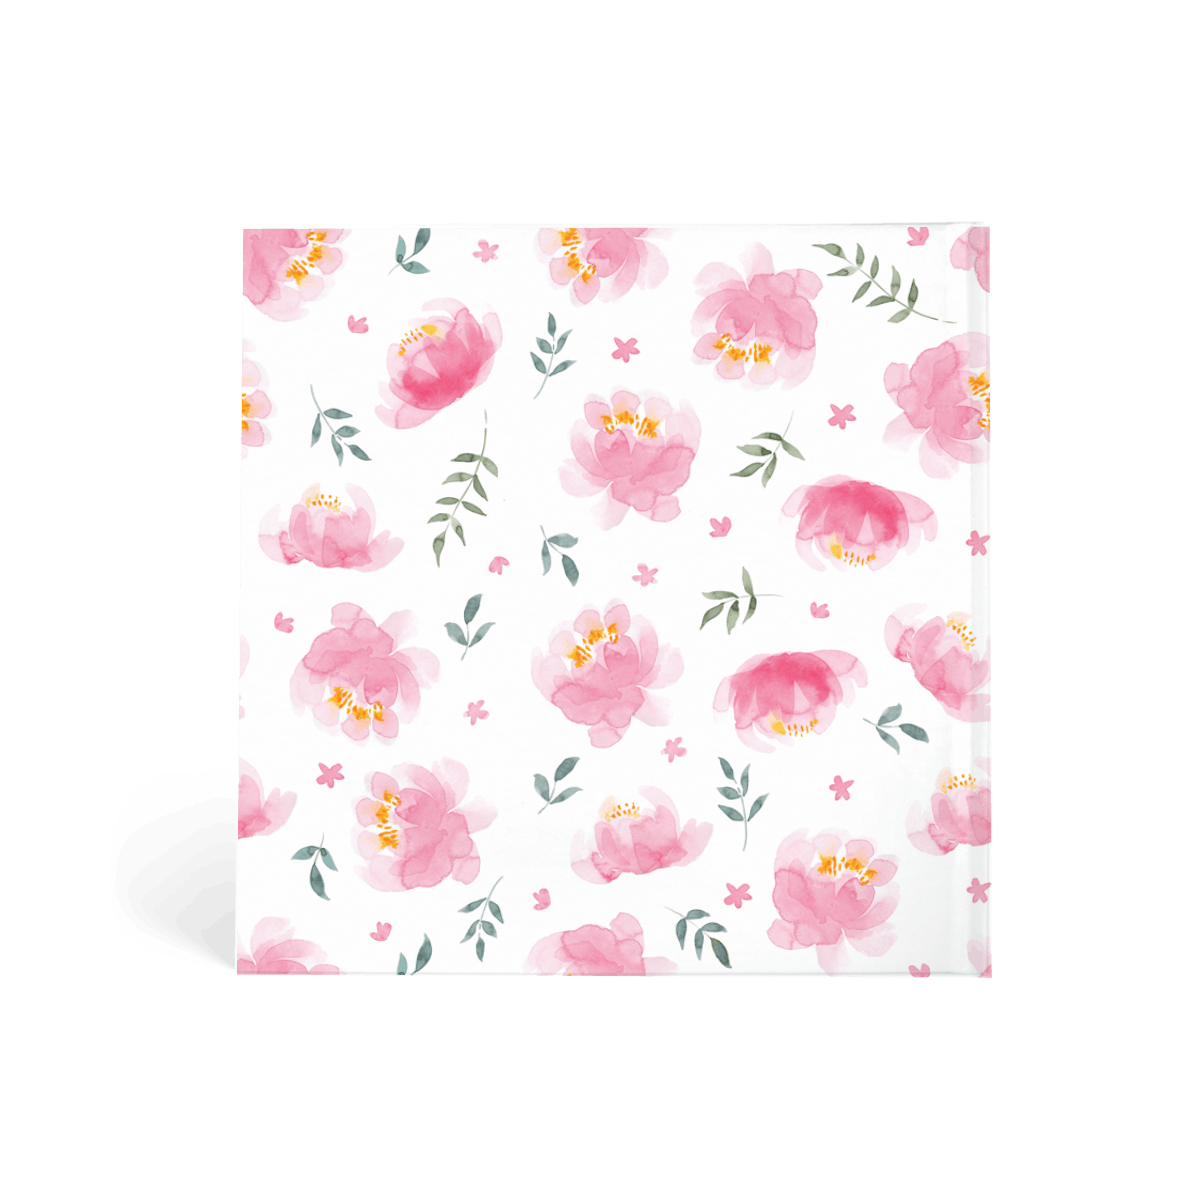 Https%3a%2f%2fwww.papier.com%2fproduct image%2f42393%2f24%2fpeonies 10848 back 1533118584.png?ixlib=rb 1.1